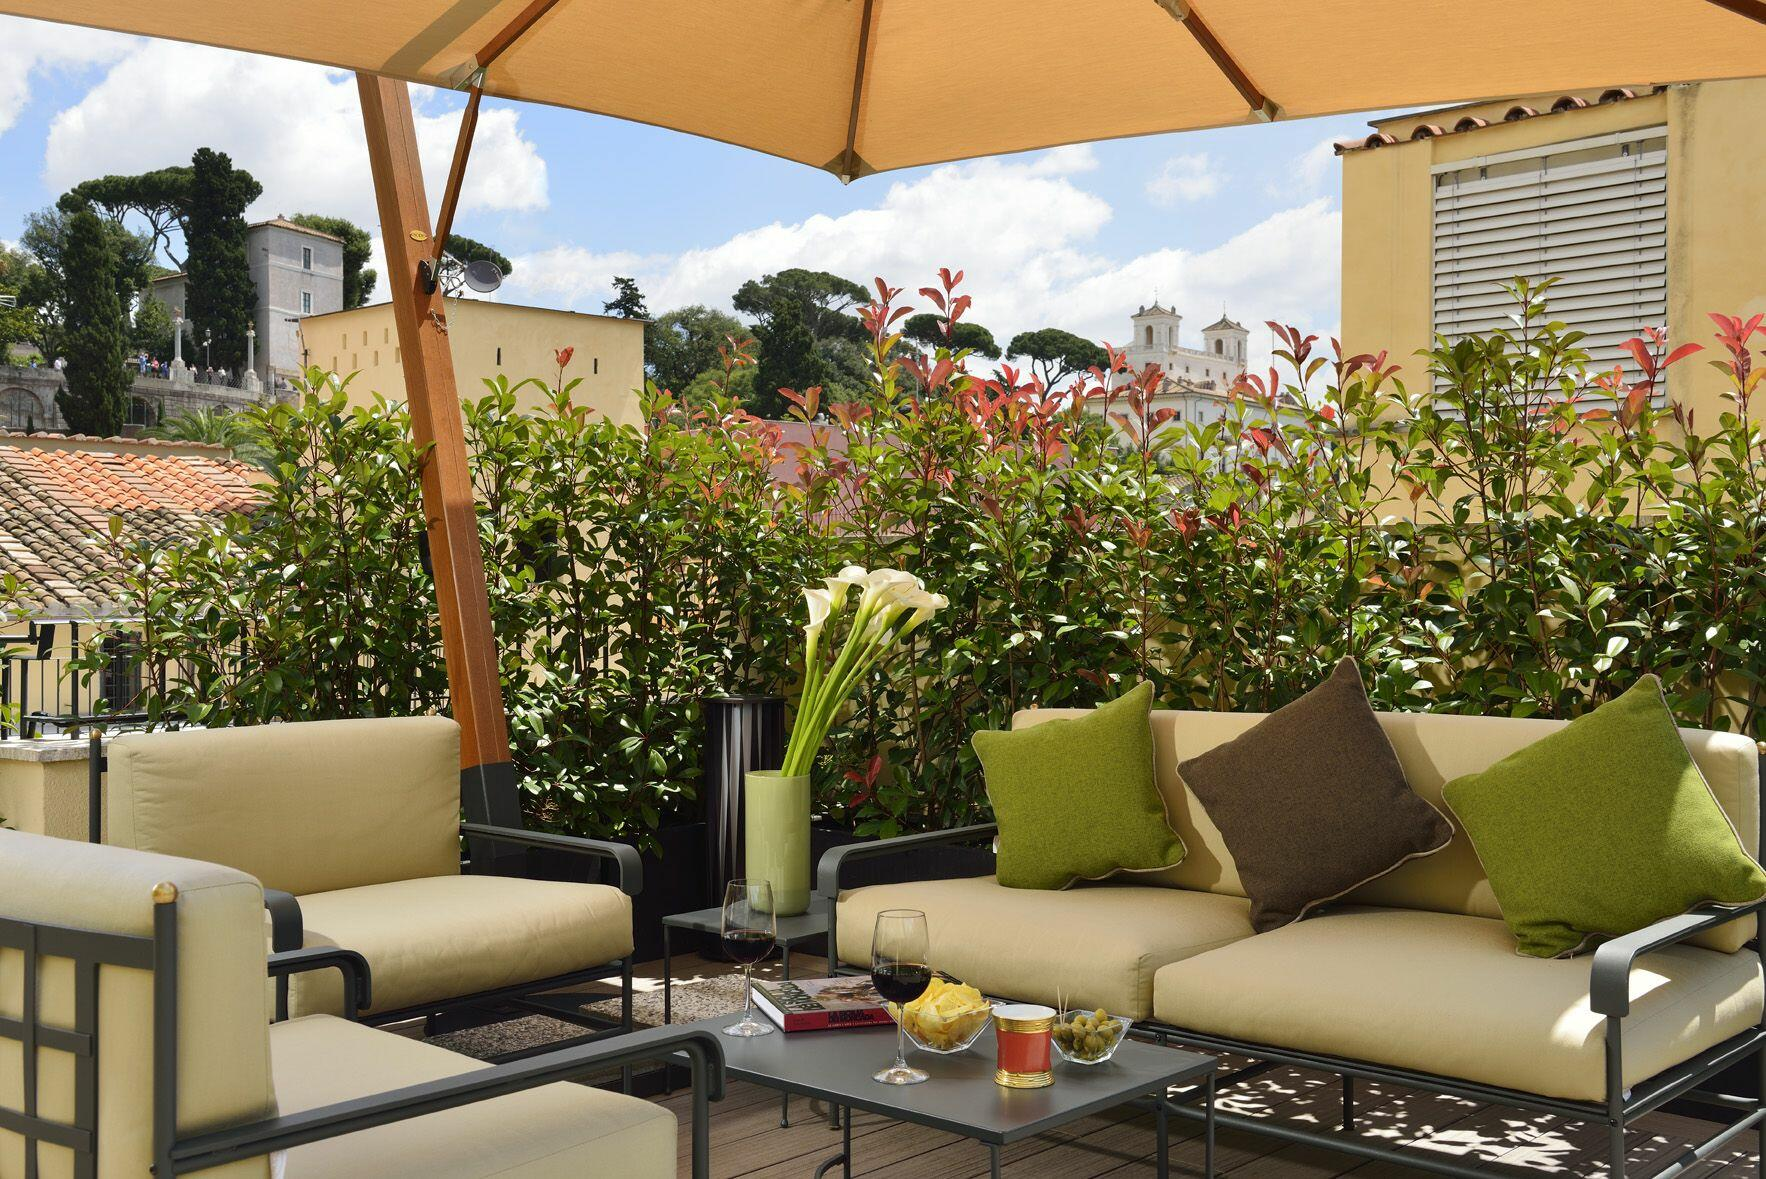 Terrace of the patrizi suite at hotel babuino 181